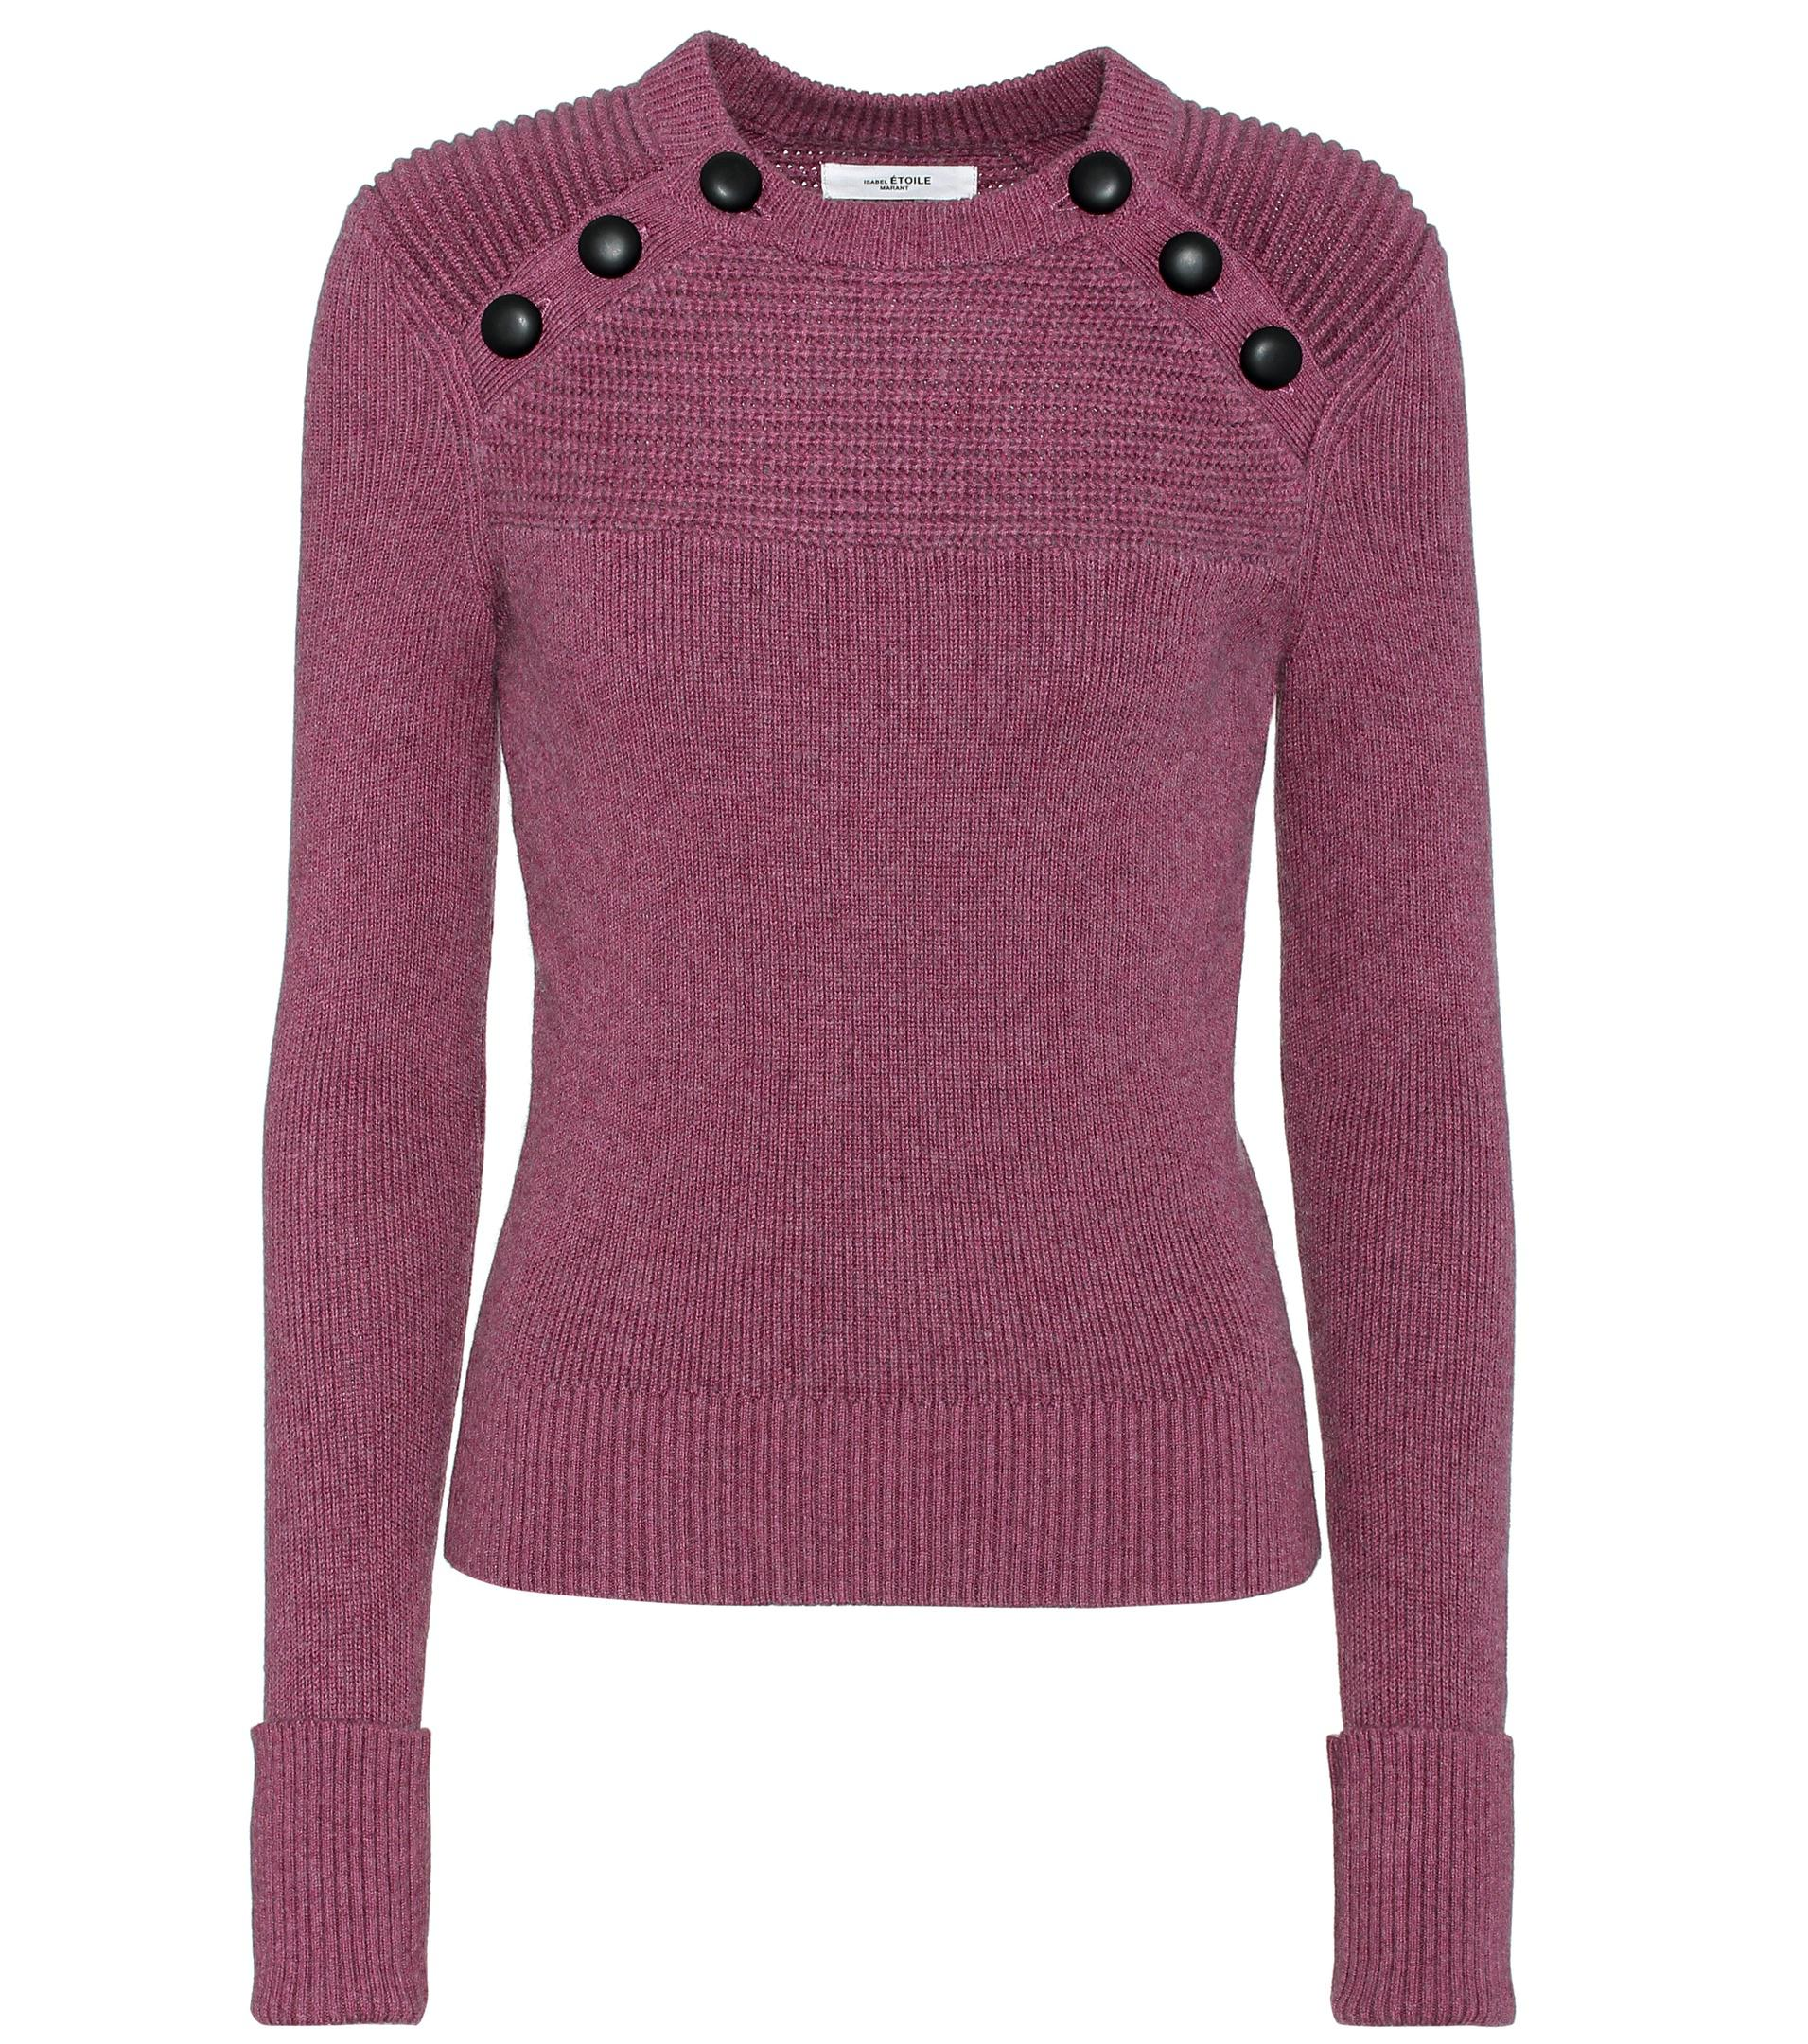 Étoile isabel marant Koyle Cotton And Wool Sweater in Purple | Lyst